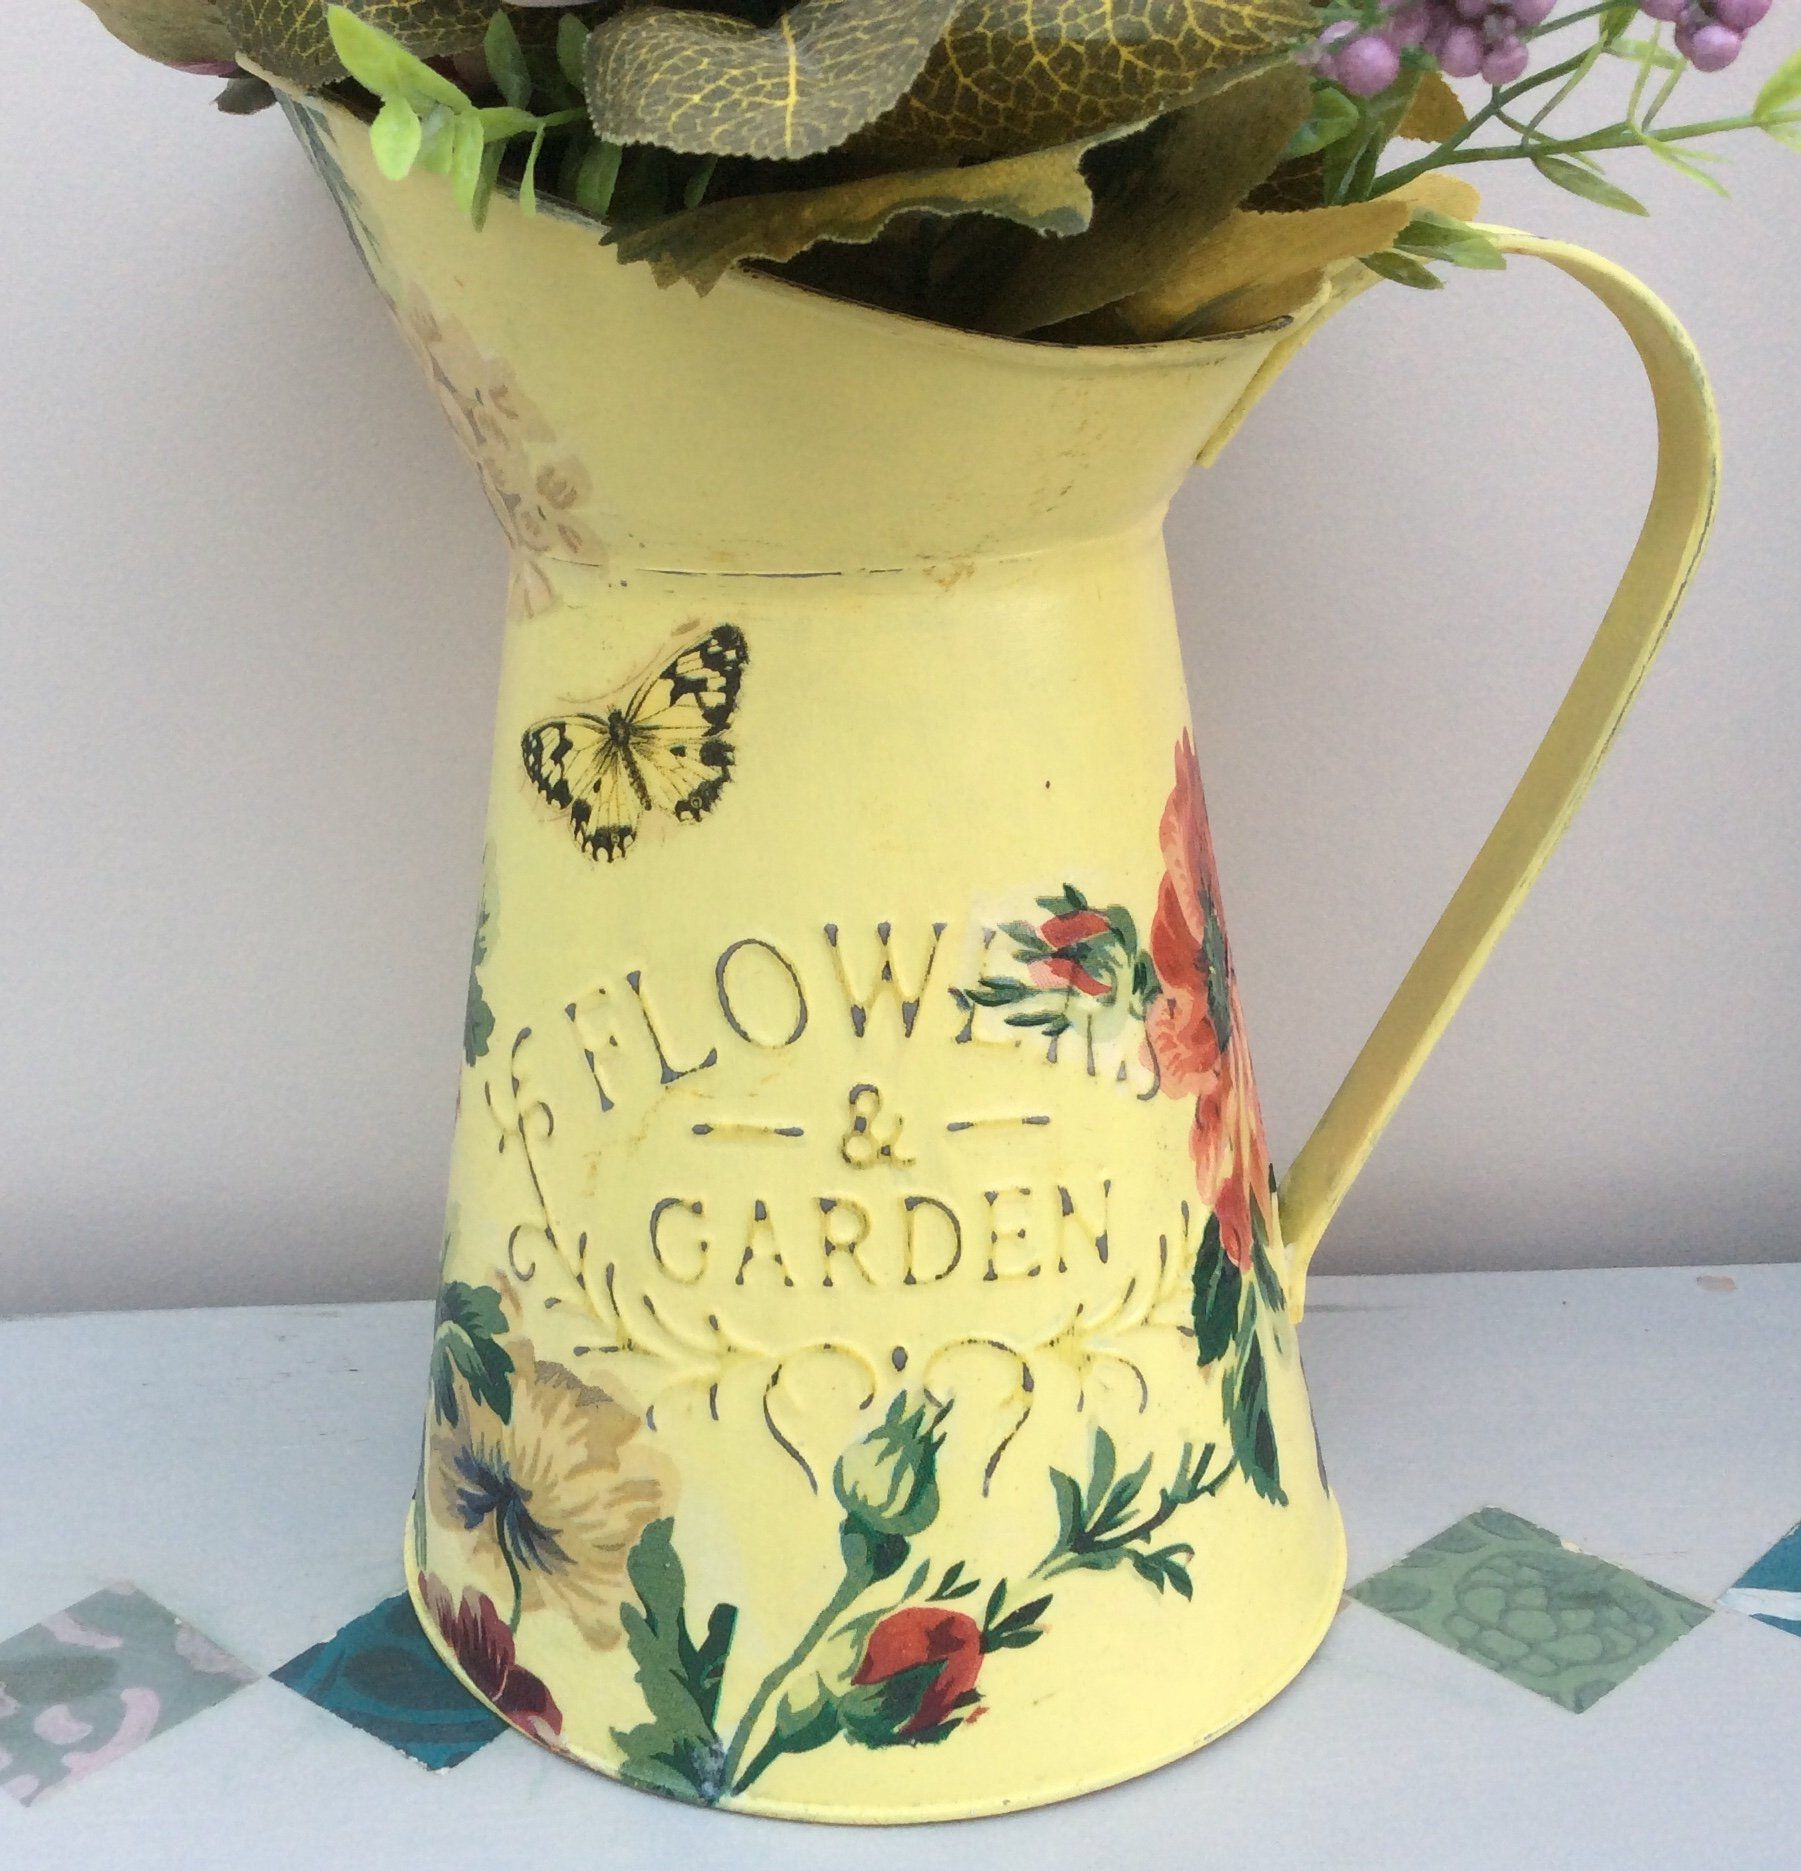 Painted Decoupaged Metal Pitcher Jug Flower Vase Vintage Style Shabby Chic Home Sweet Home Country Style Decor Shabby Chic Jug Country Style Decor Flower Vases